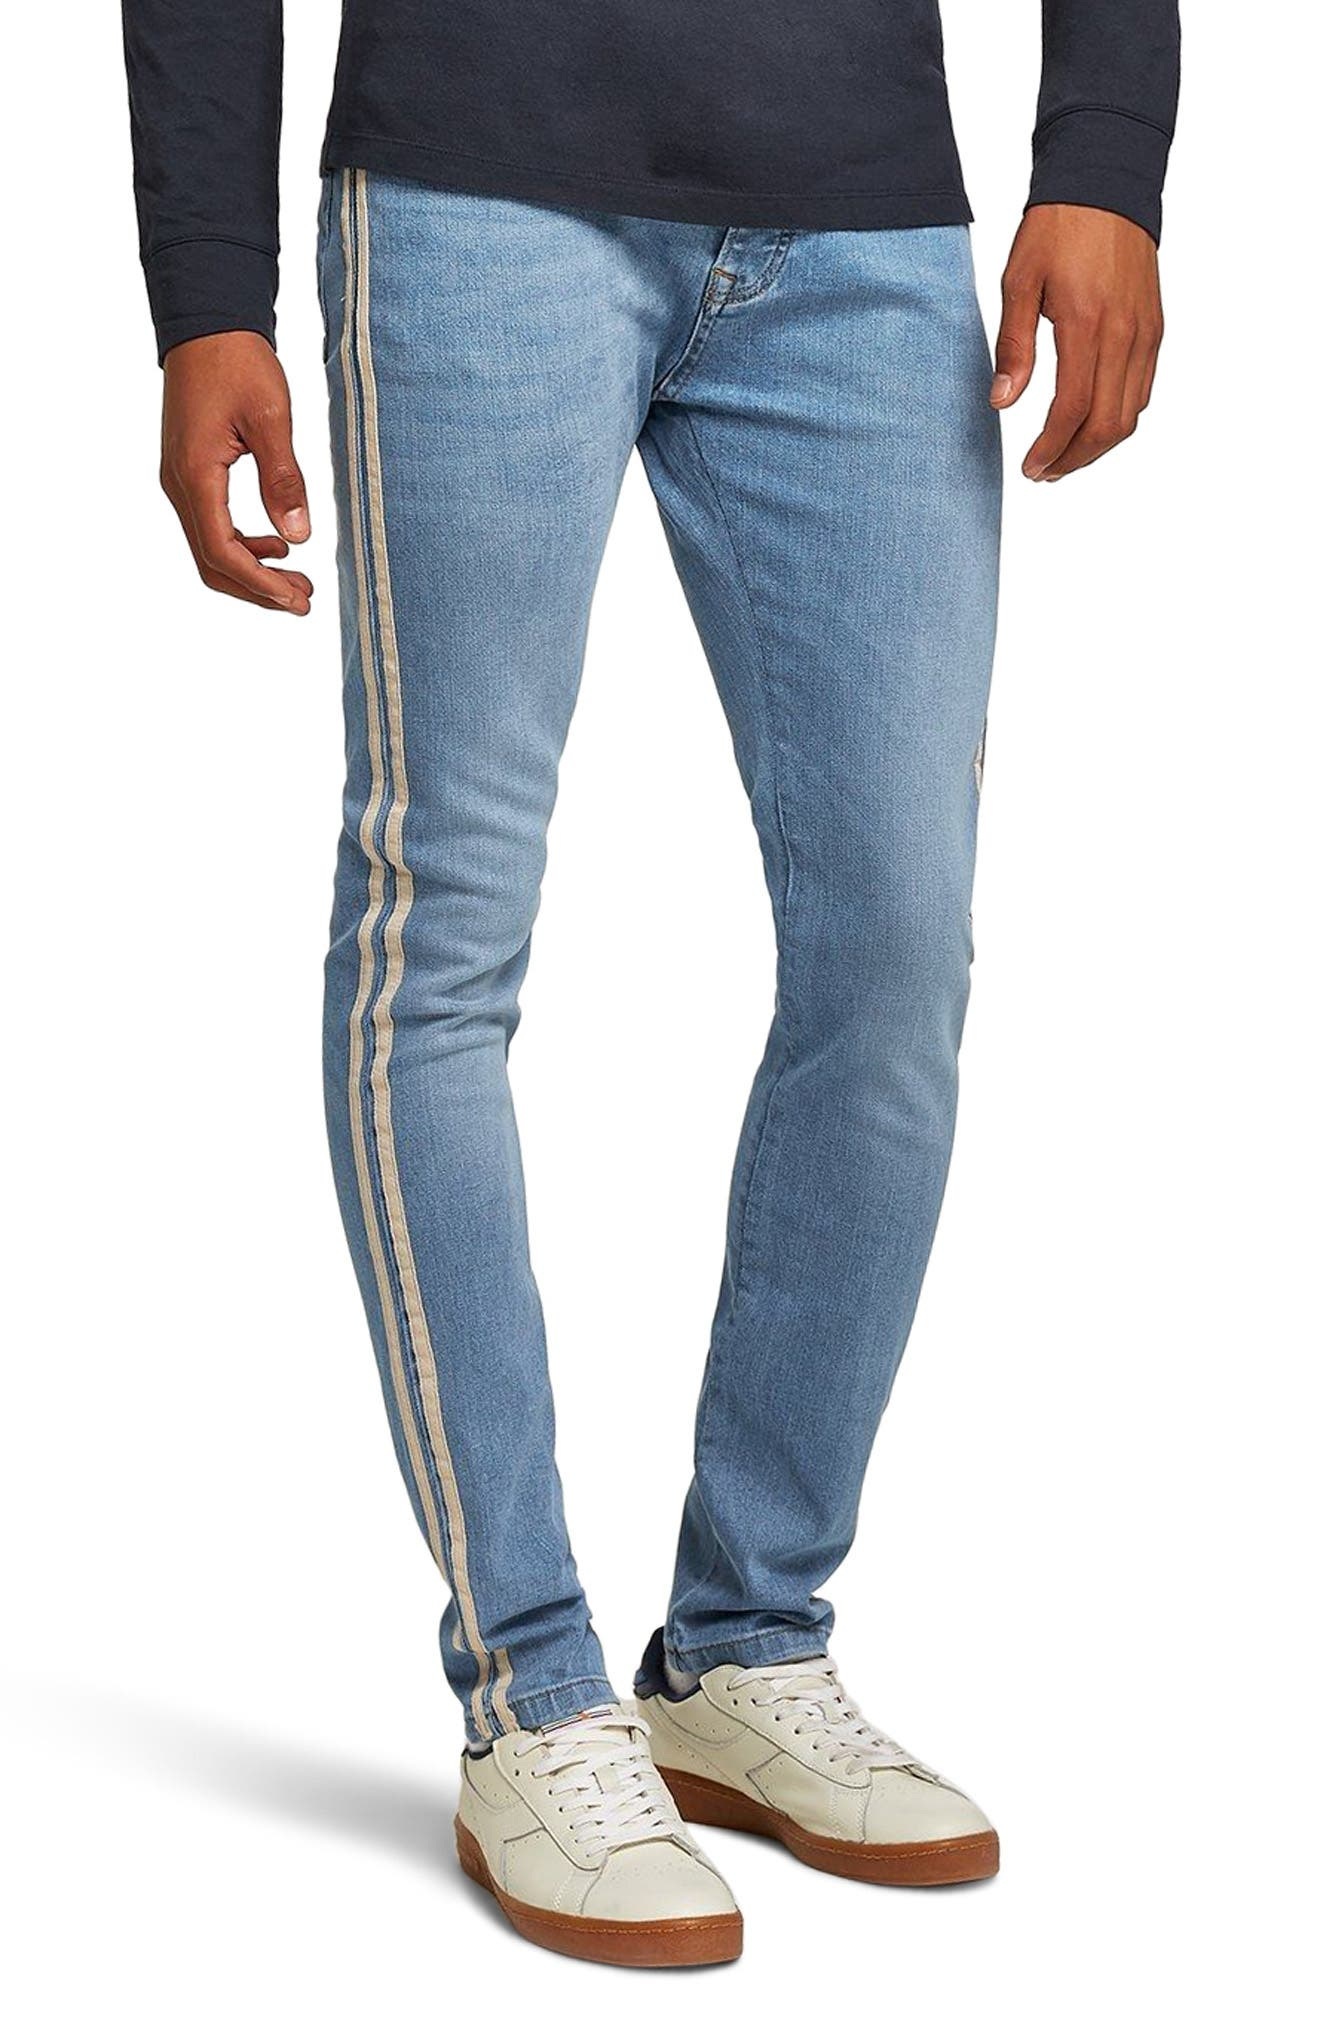 Tape Stretch Skinny Fit Jeans,                         Main,                         color, BLUE